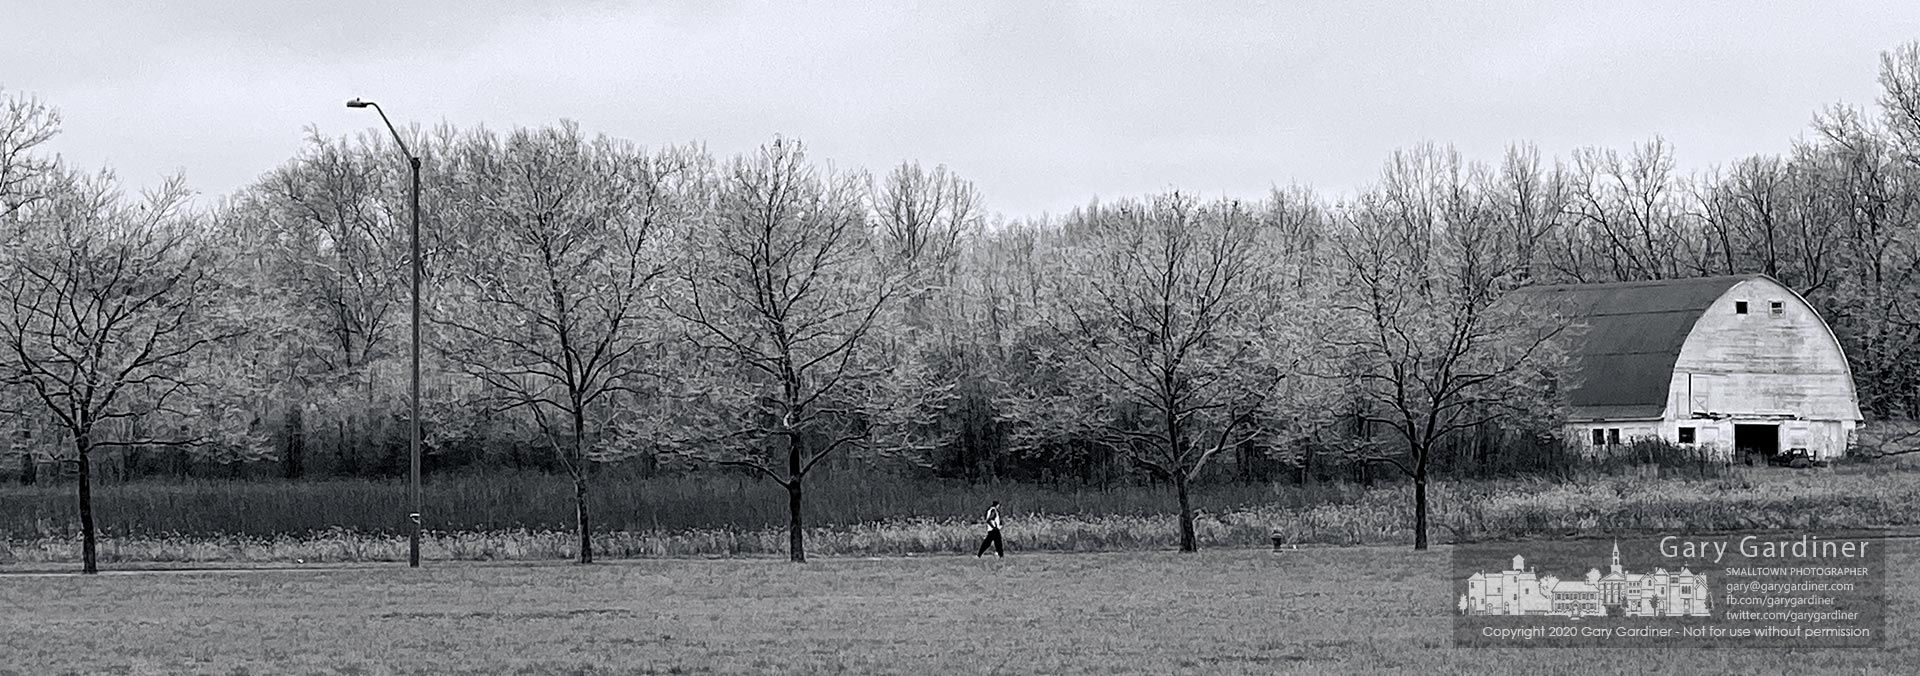 A runner travels along Cooper Road in the shadow of ice-covered trees after an overnight storm delivered freezing rain to central Ohio. My Final Photo for Feb. 6, 2020.